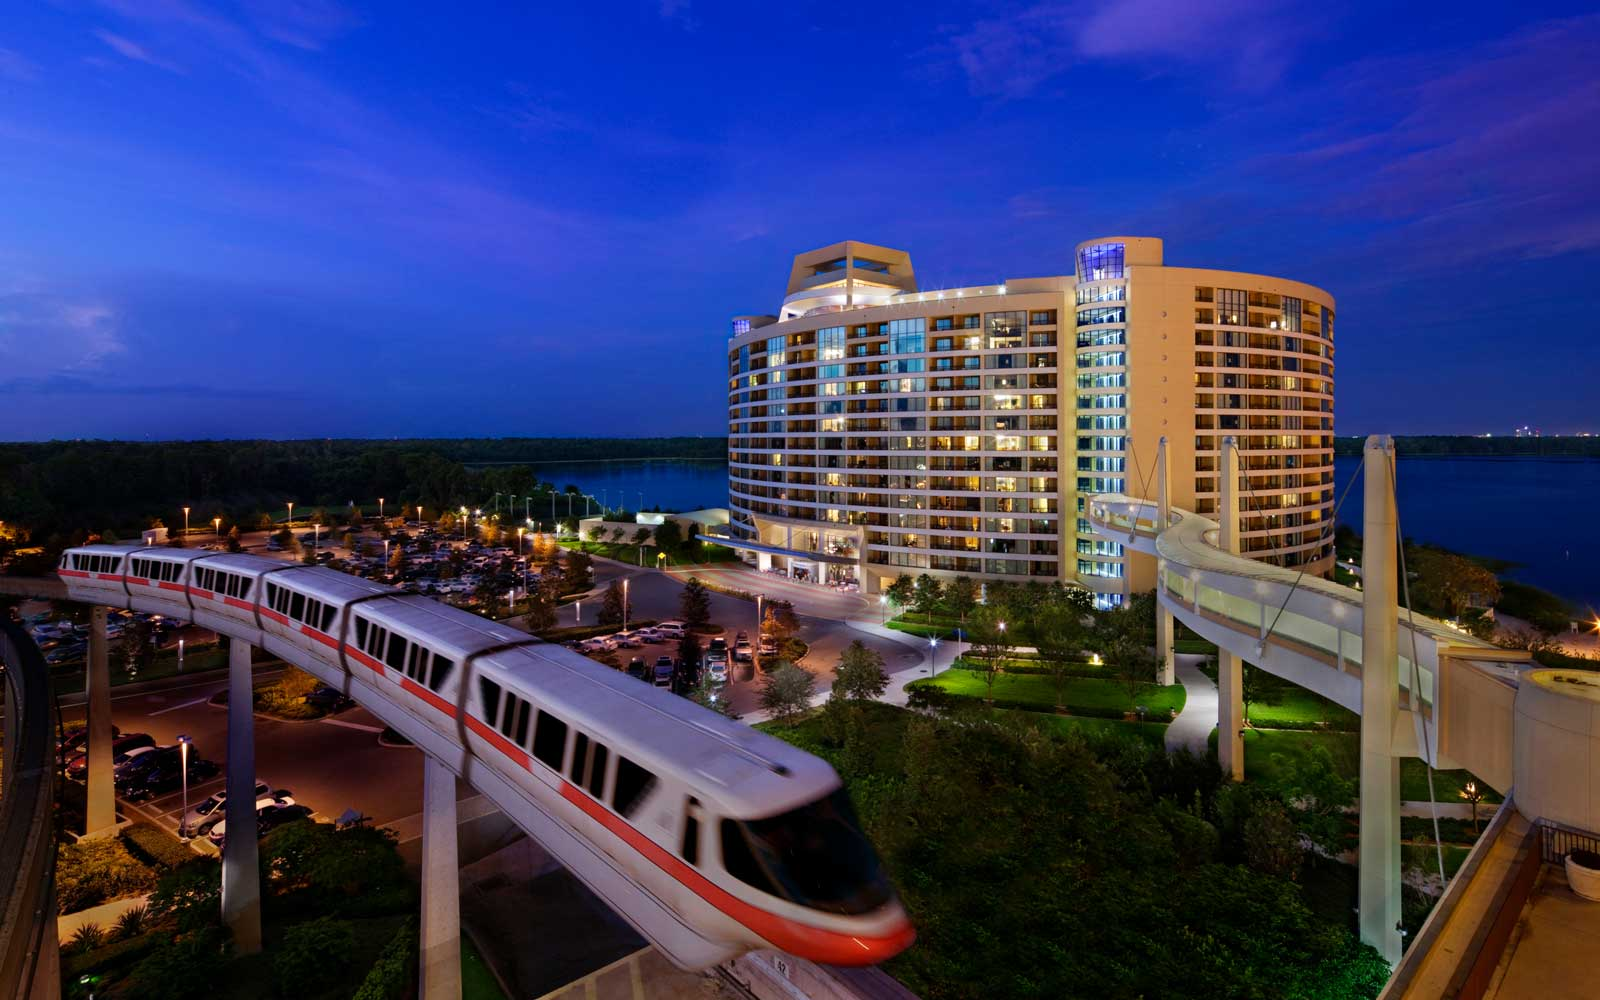 Disney World's New Gondola System Will Let You Fly Across the Parks